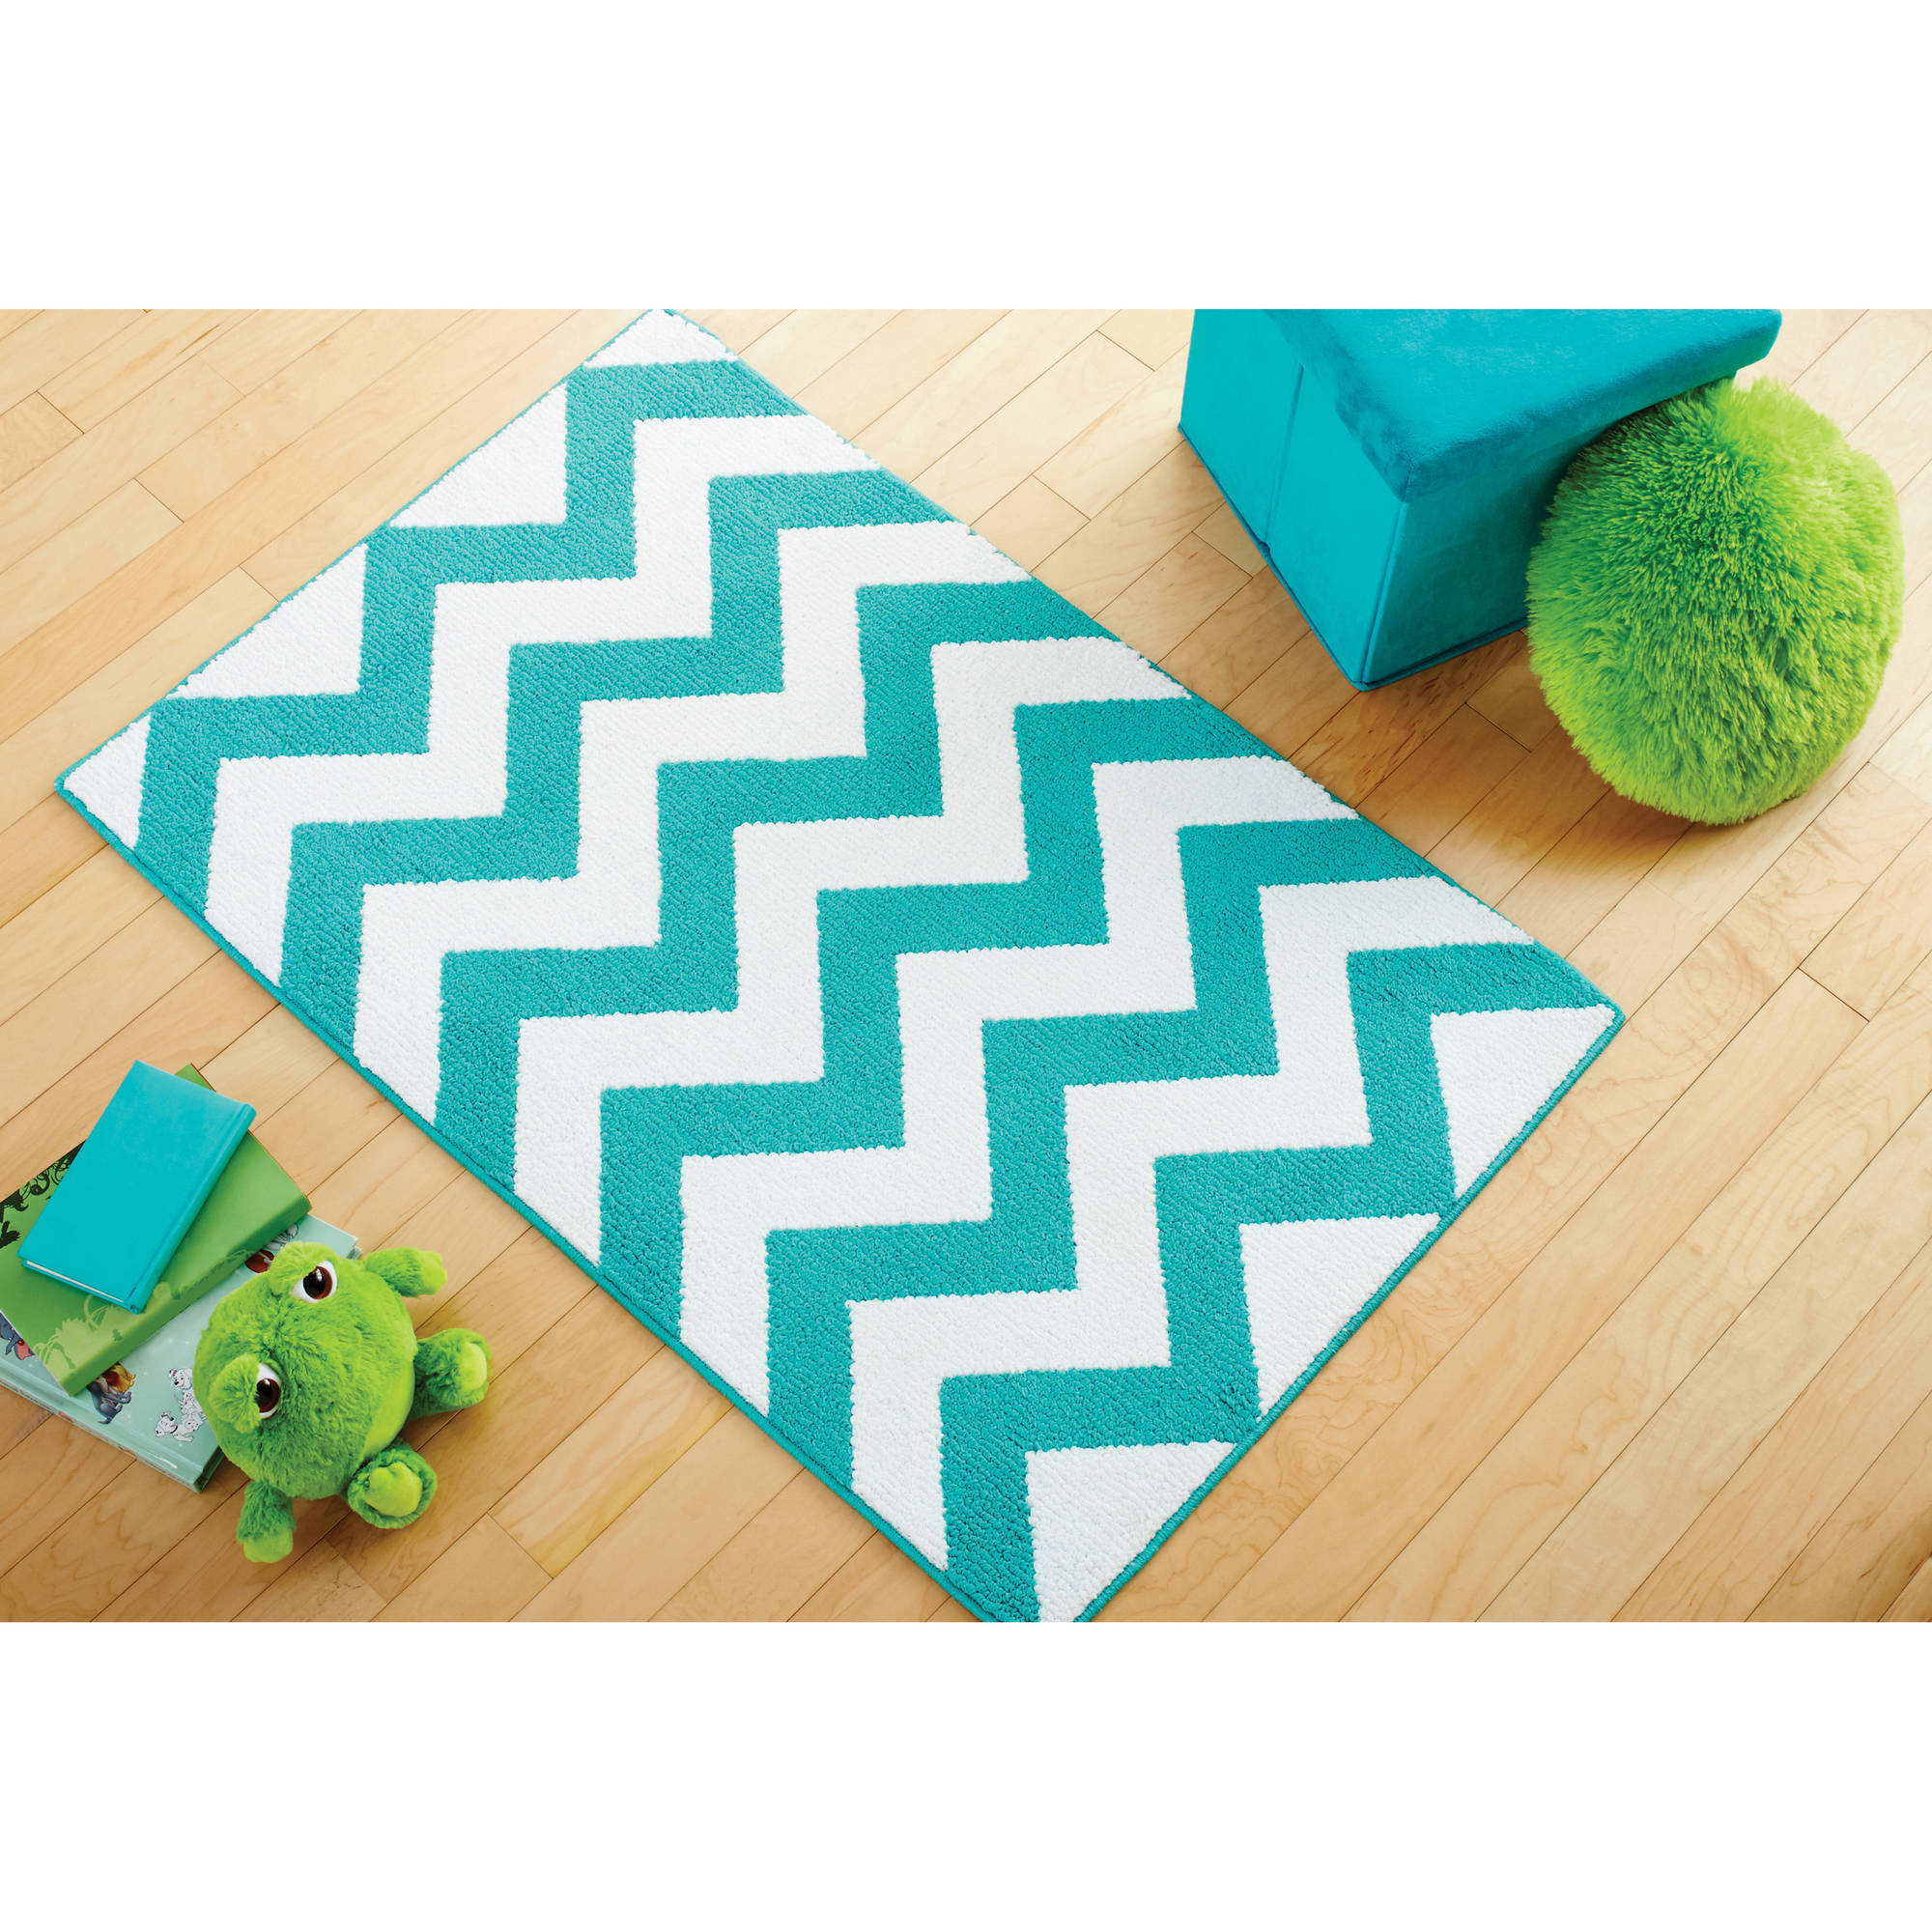 Children's Floor Rugs Mainstays Kids Chevron Pattern Rug